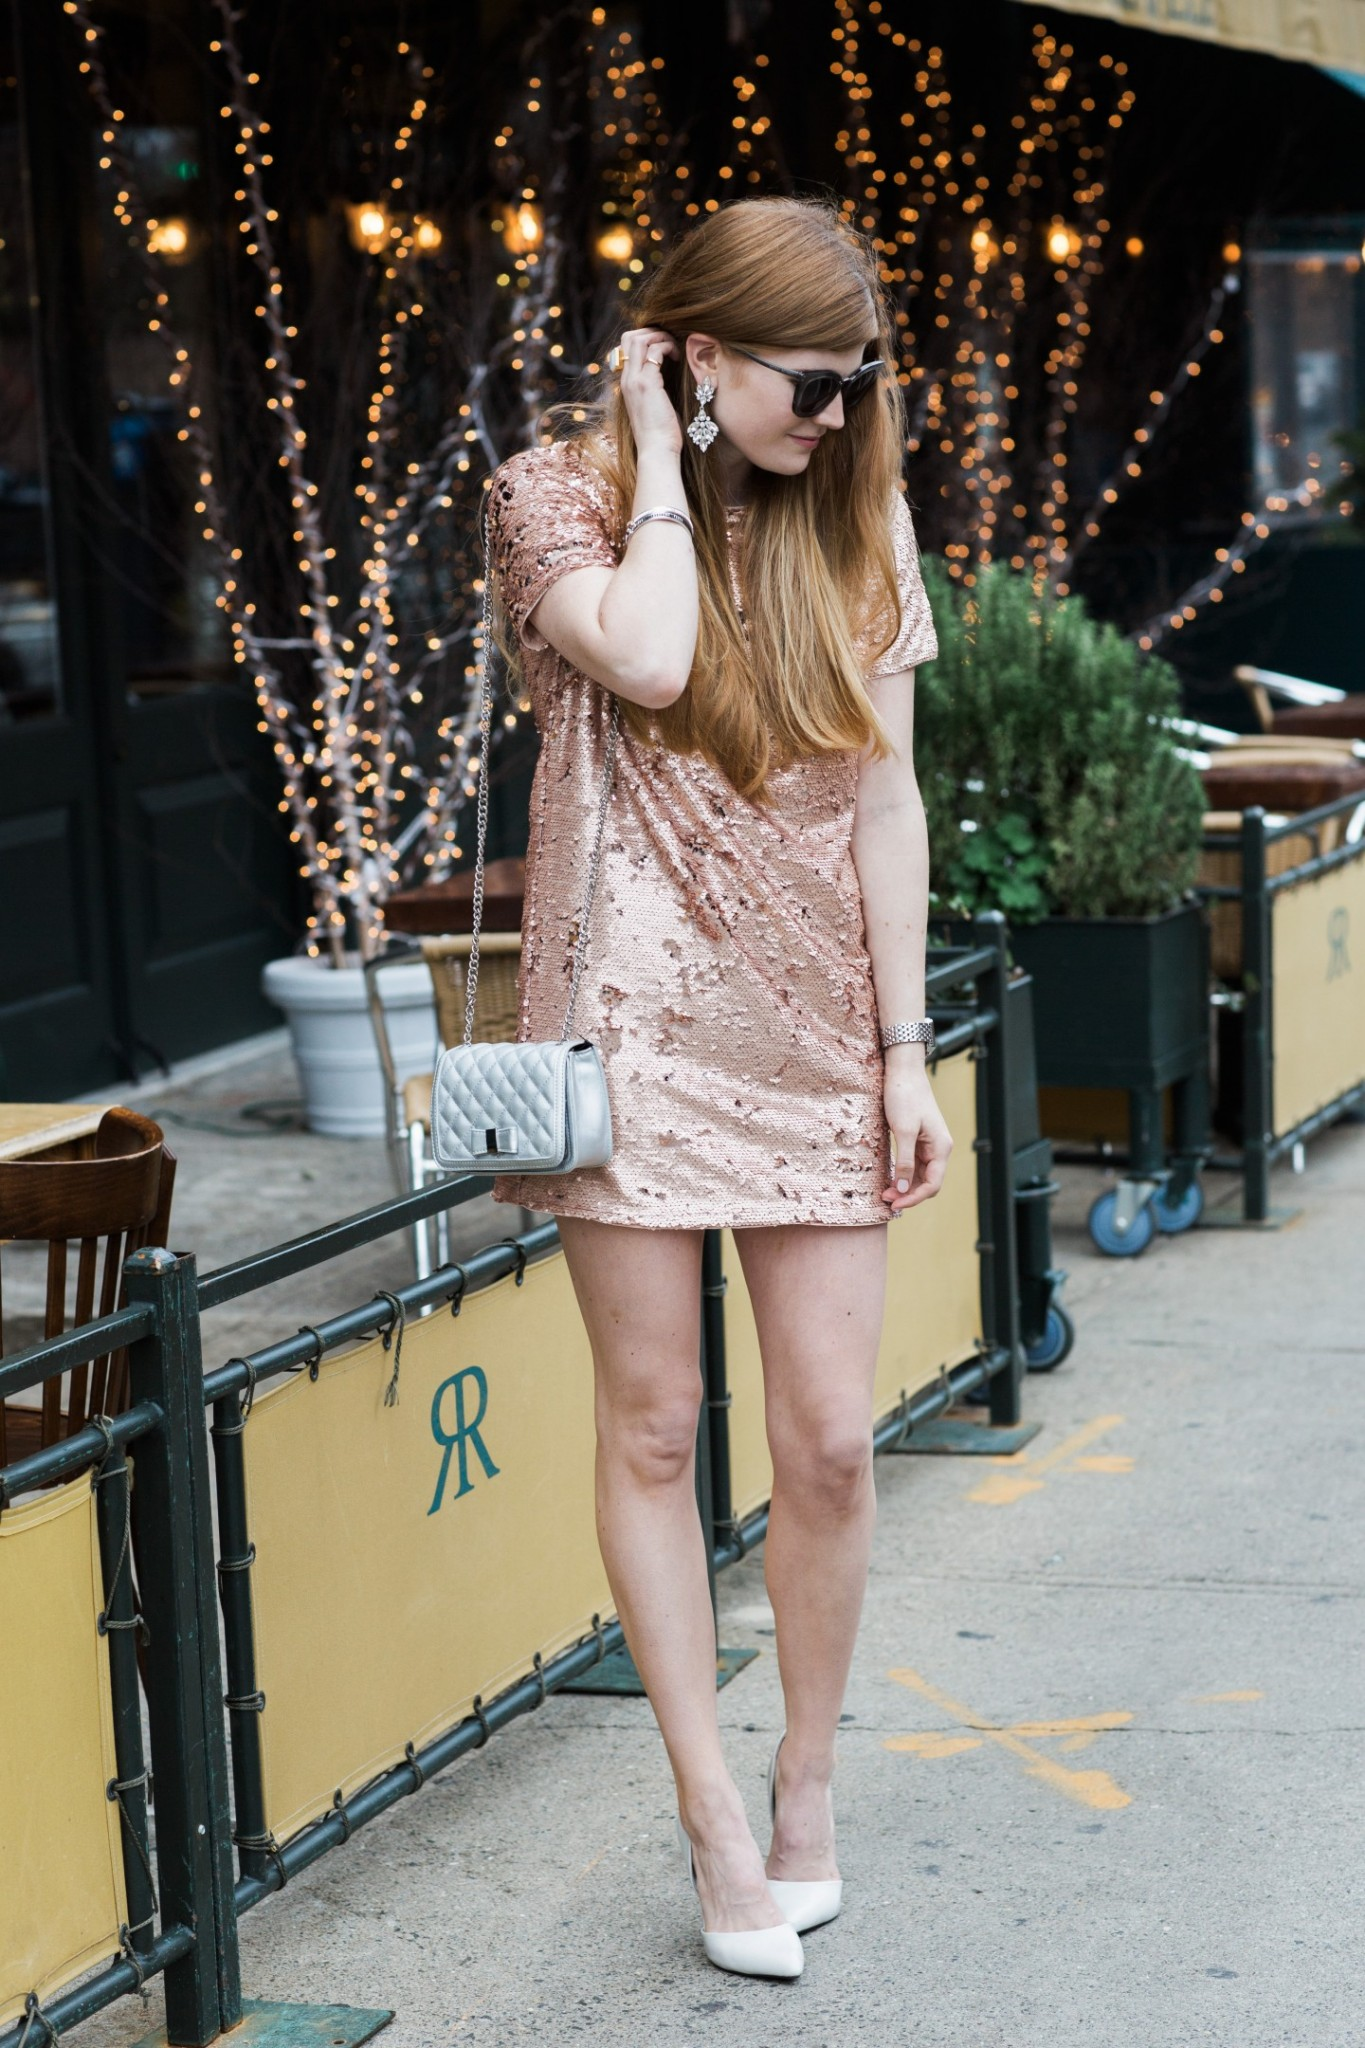 Lifestyle blogger Mollie Sheperdson shares 5 easy to re-create holiday looks